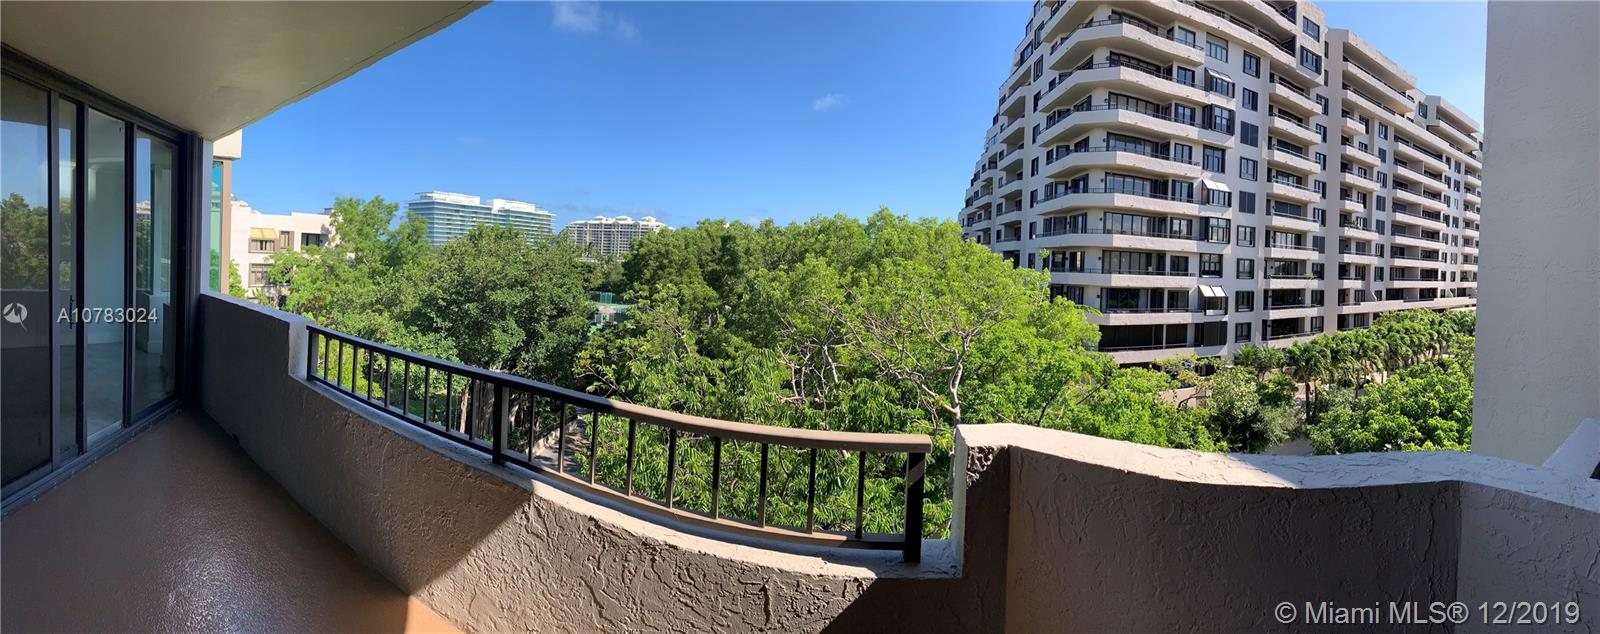 BRIGHT AND REMODELED PENTHOUSE at Key Colony! Impeccable appliances. Spacious, open views. 2 bed /2 bath + Den with door and window, that may be used as a 3rd bedroom. 2 PARKING SPACES. Key Colony has direct beach access, swimming pools, restaurants, beauty salon, kids playground, tennis courts, gym, etc.